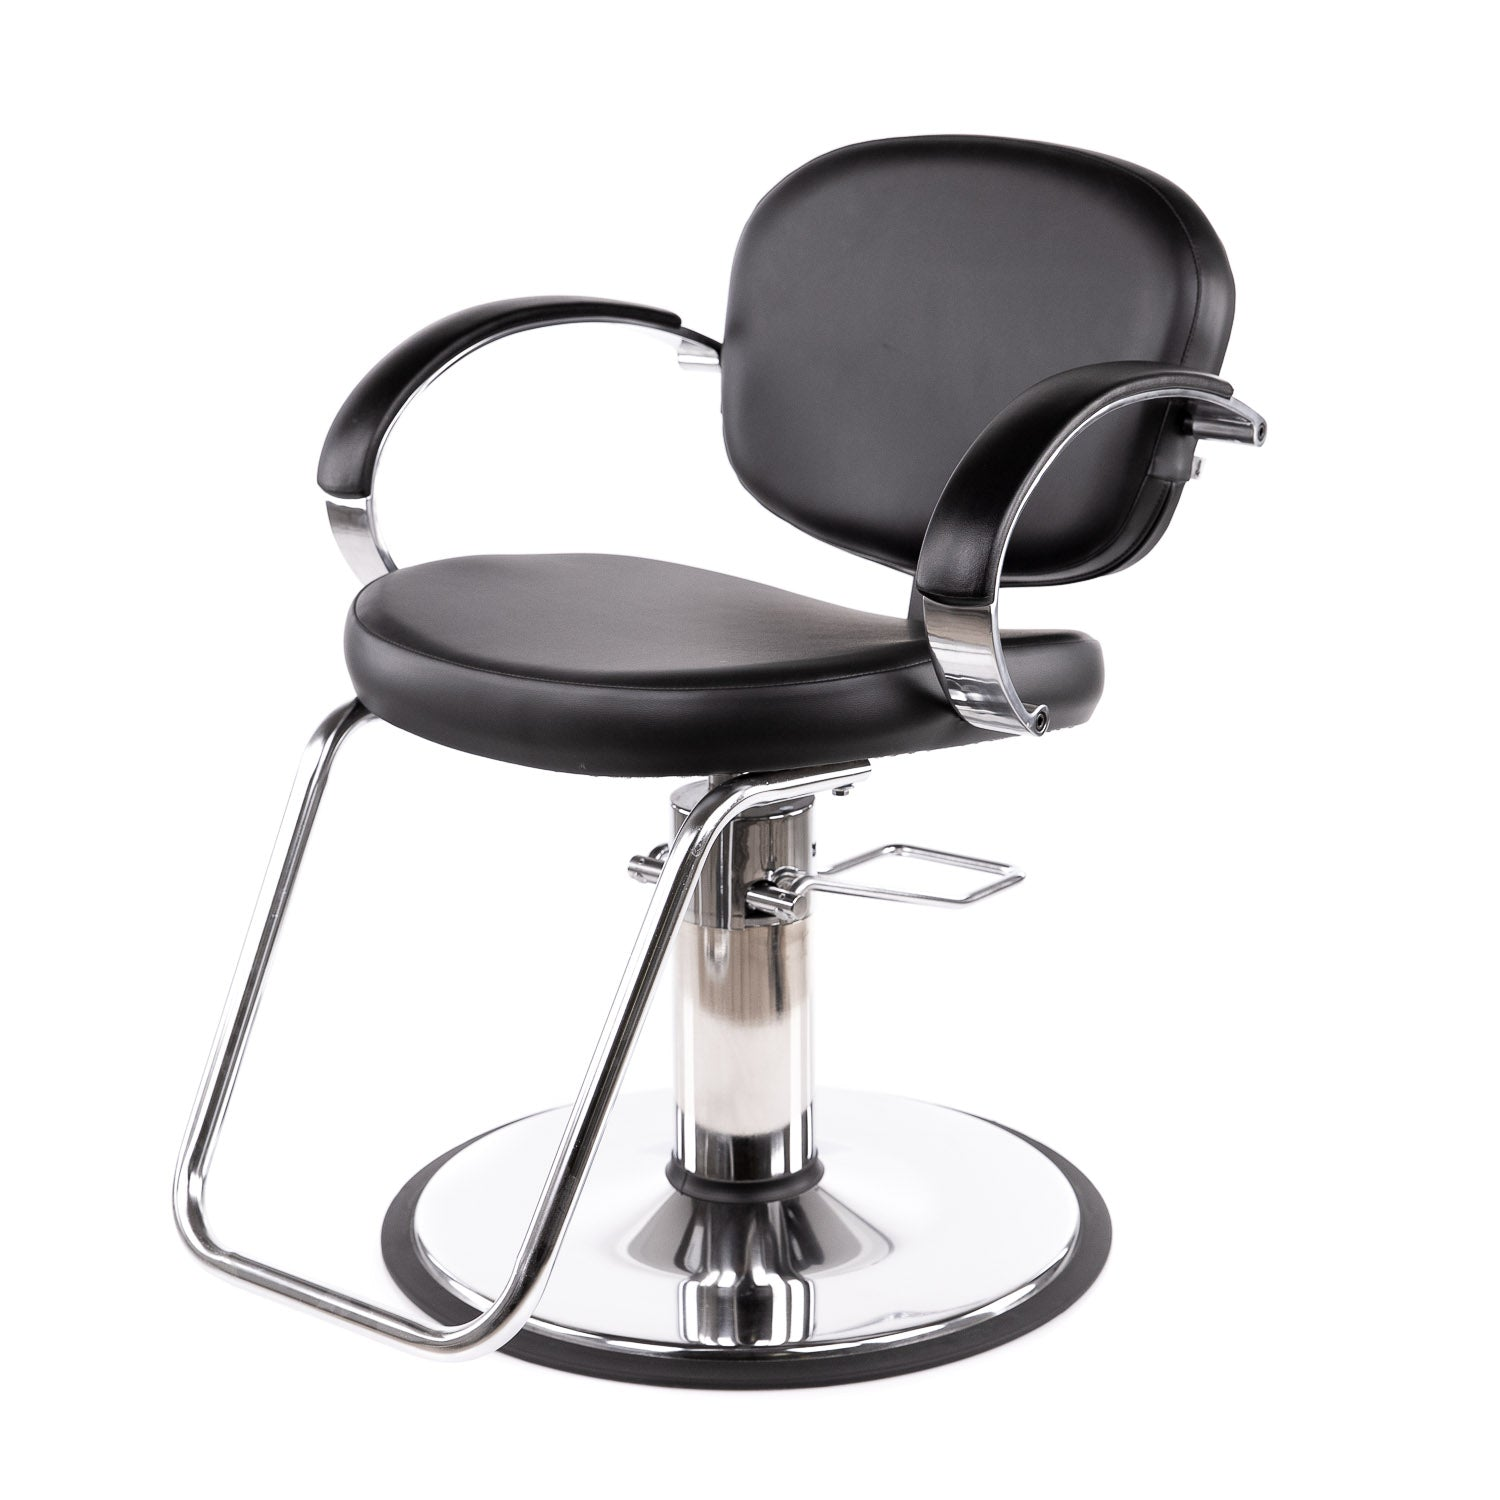 Valenti Styling Chair - Collins